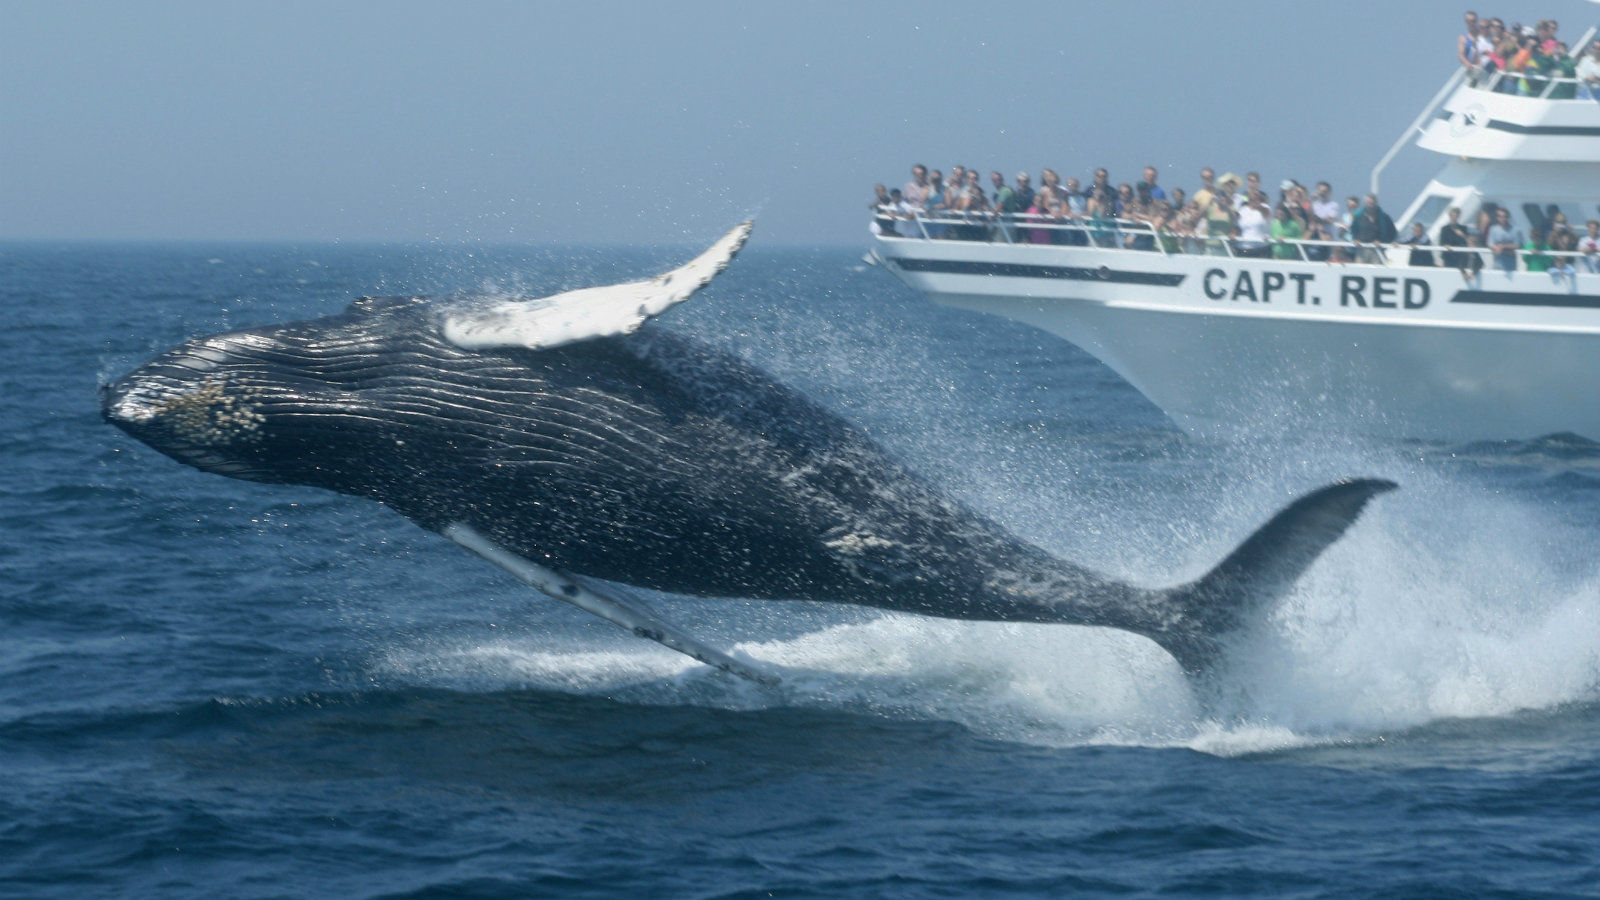 Things to Do in Cape Cod - Whale Watching